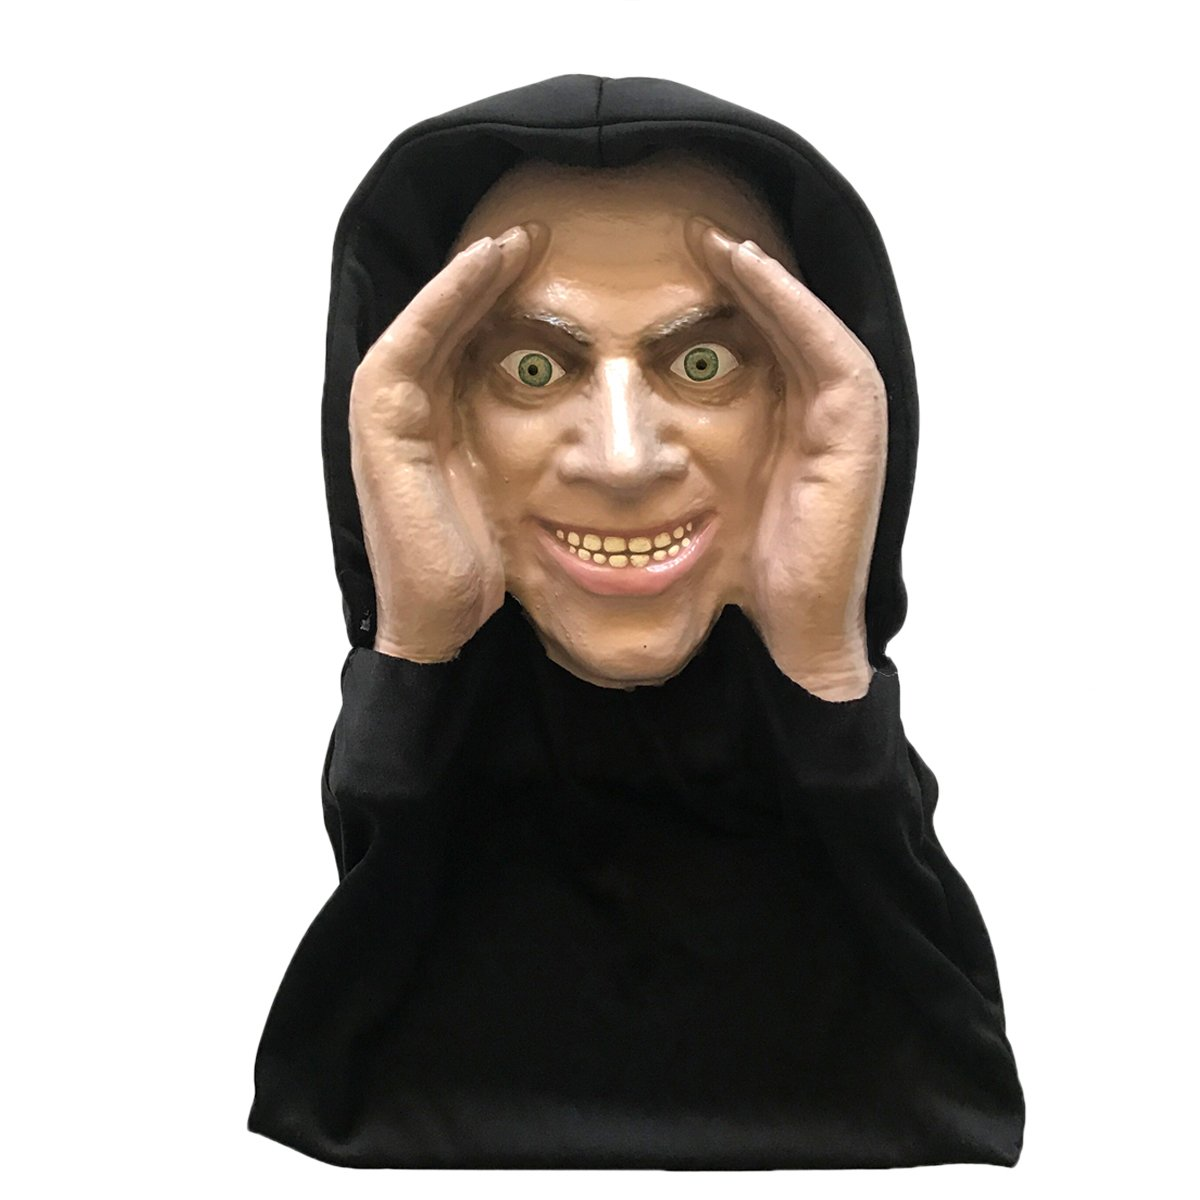 Halloween Decoration - Scary Peeper - Hitchhiker